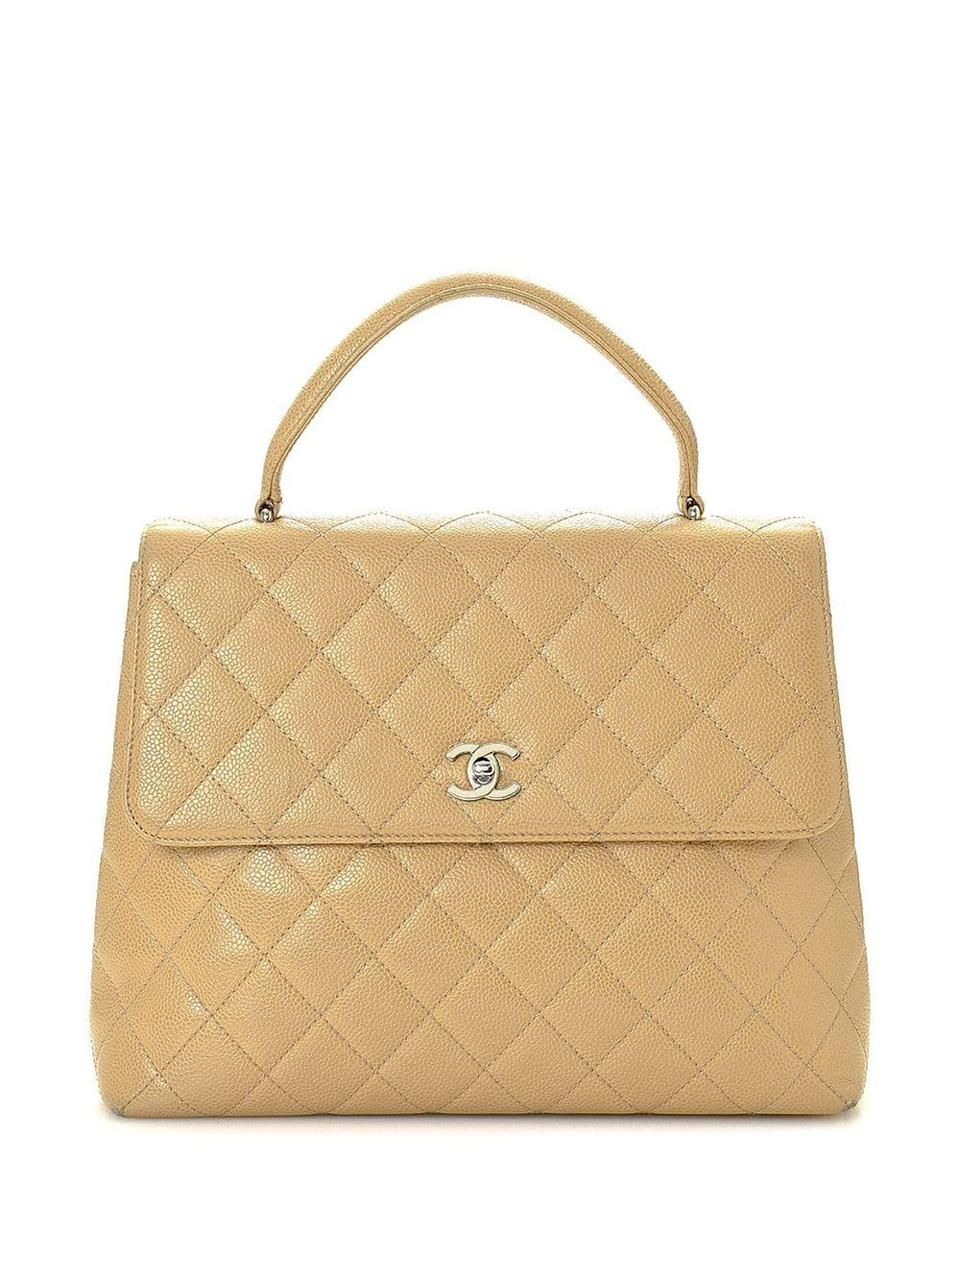 """<p><strong>Chanel Pre-Owned</strong></p><p>farfetch.com</p><p><strong>$3295.00</strong></p><p><a href=""""https://go.redirectingat.com?id=74968X1596630&url=https%3A%2F%2Fwww.farfetch.com%2Fshopping%2Fwomen%2Fchanel-pre-owned-kelly-diamond-quilted-handbag-item-16595596.aspx&sref=https%3A%2F%2Fwww.harpersbazaar.com%2Fwedding%2Fplanning%2Fg37129060%2F10-year-anniversary-gifts%2F"""" rel=""""nofollow noopener"""" target=""""_blank"""" data-ylk=""""slk:SHOP NOW"""" class=""""link rapid-noclick-resp"""">SHOP NOW</a></p><p>Stick to a theme, but get creative. Diamond quilting (especially in the form of a must-have bag) works just as well for the fashion fanatic as fine jewelry.</p>"""